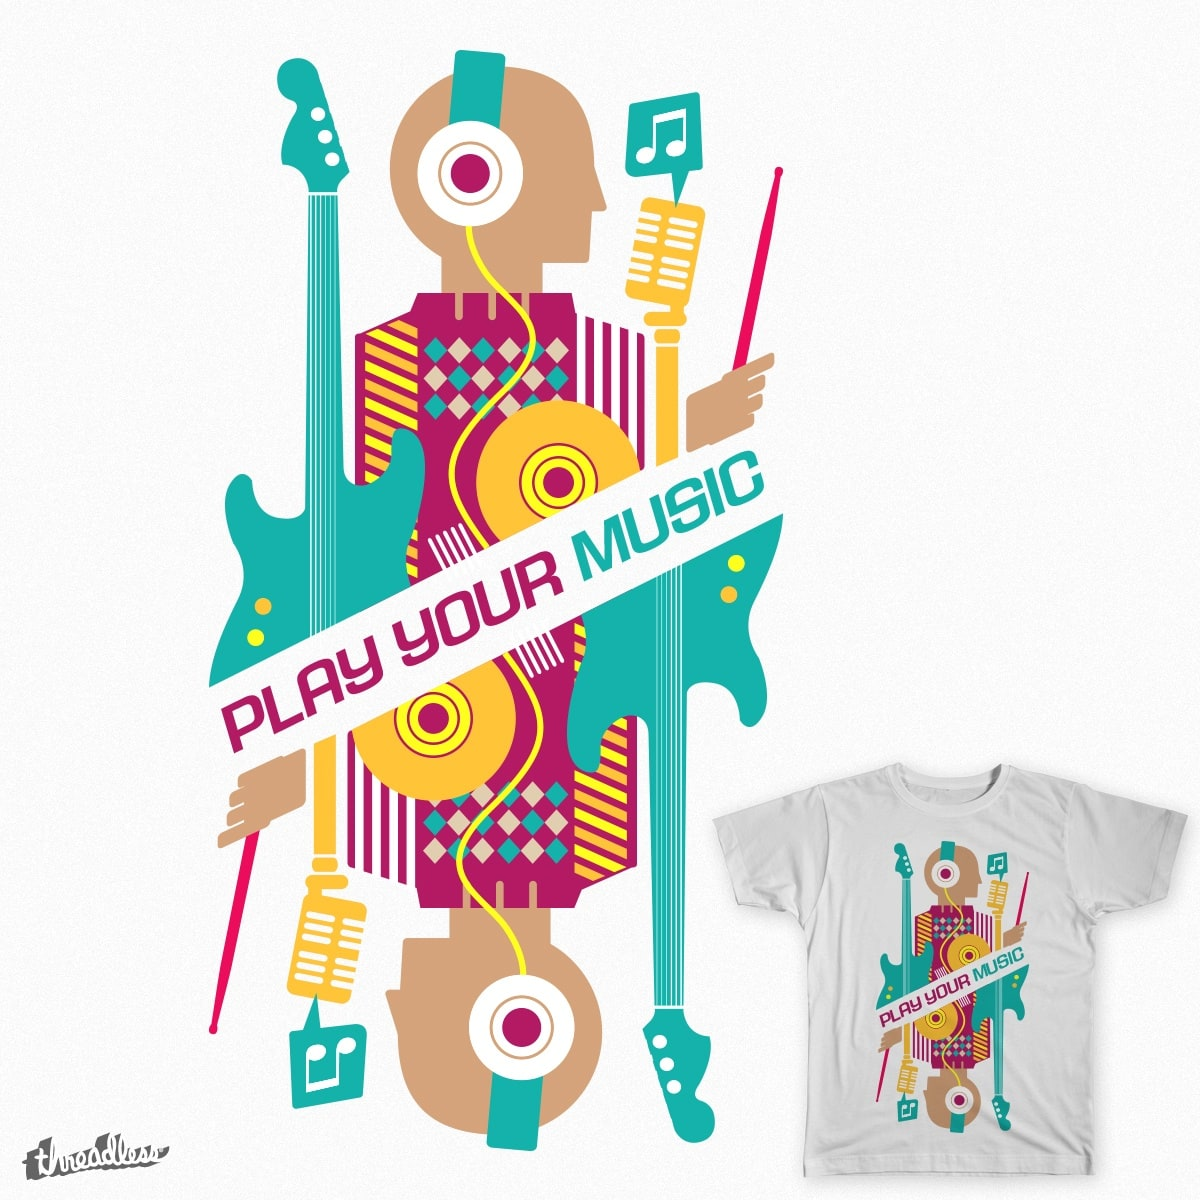 Play Your Music by felixphi on Threadless